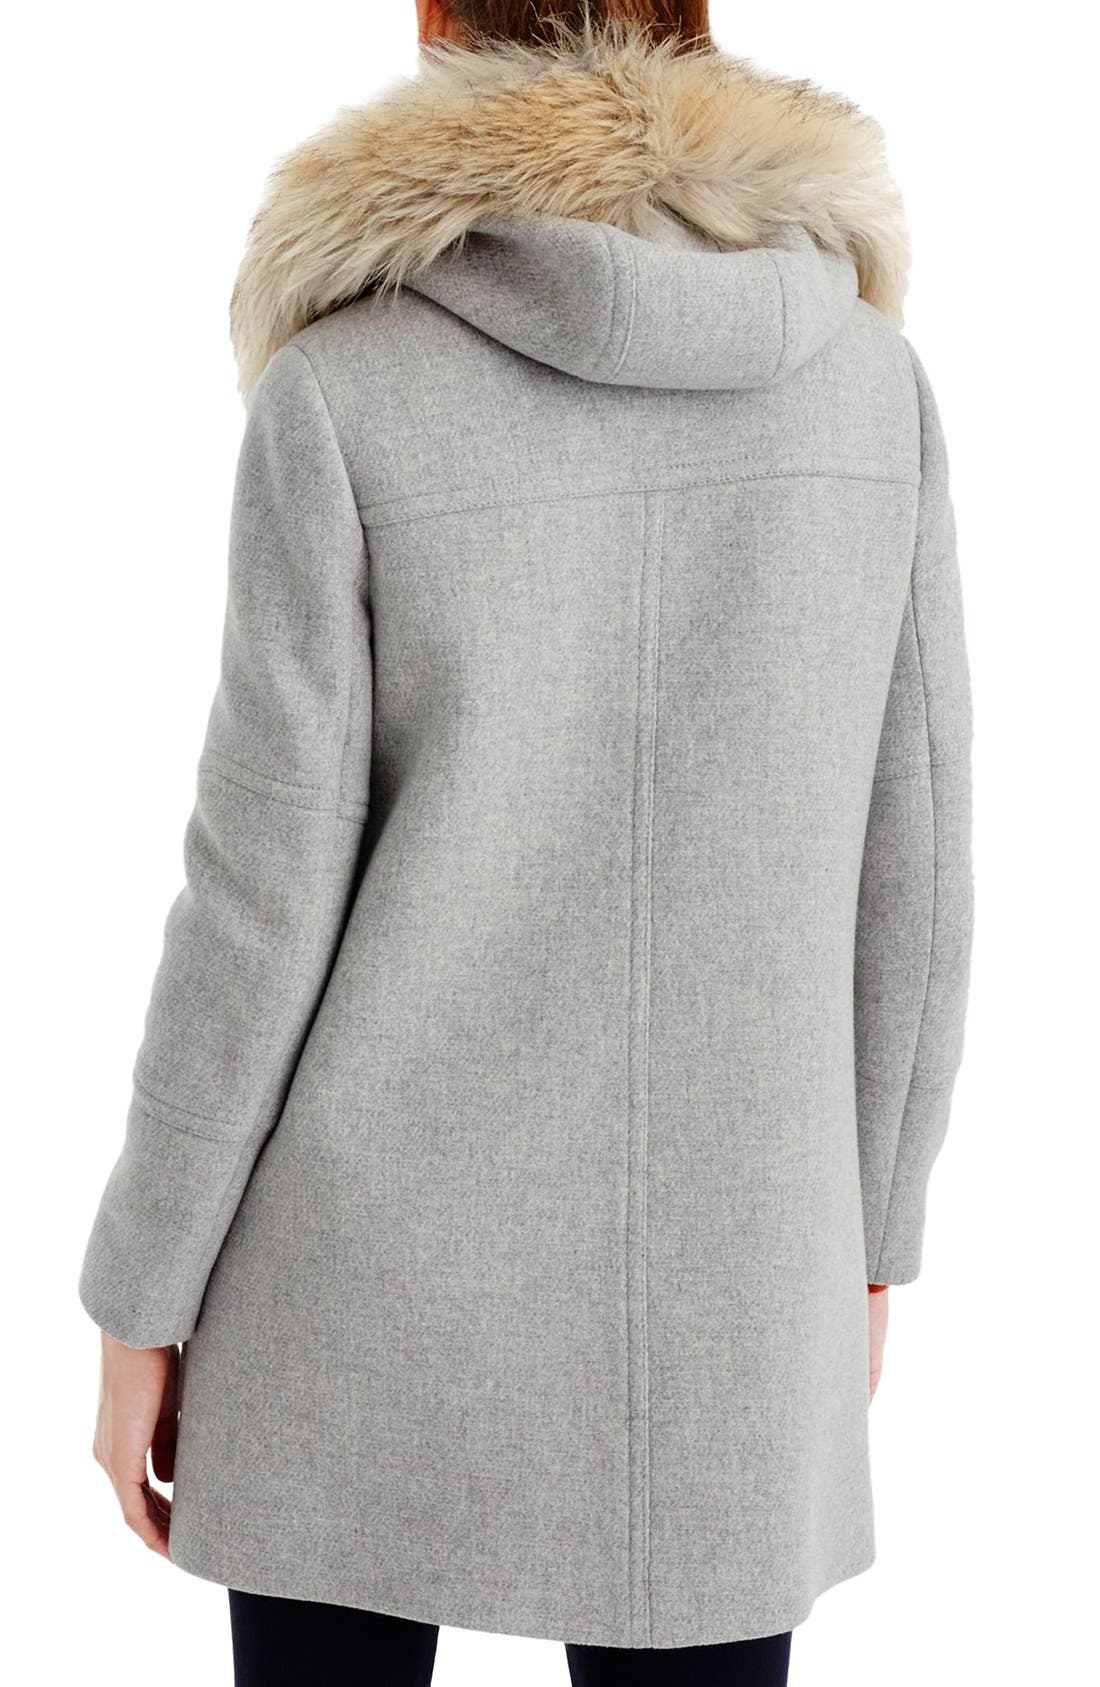 Alternate Image 2  - J.Crew Chateau Stadium Cloth Parka with Faux Fur (Regular & Petite)